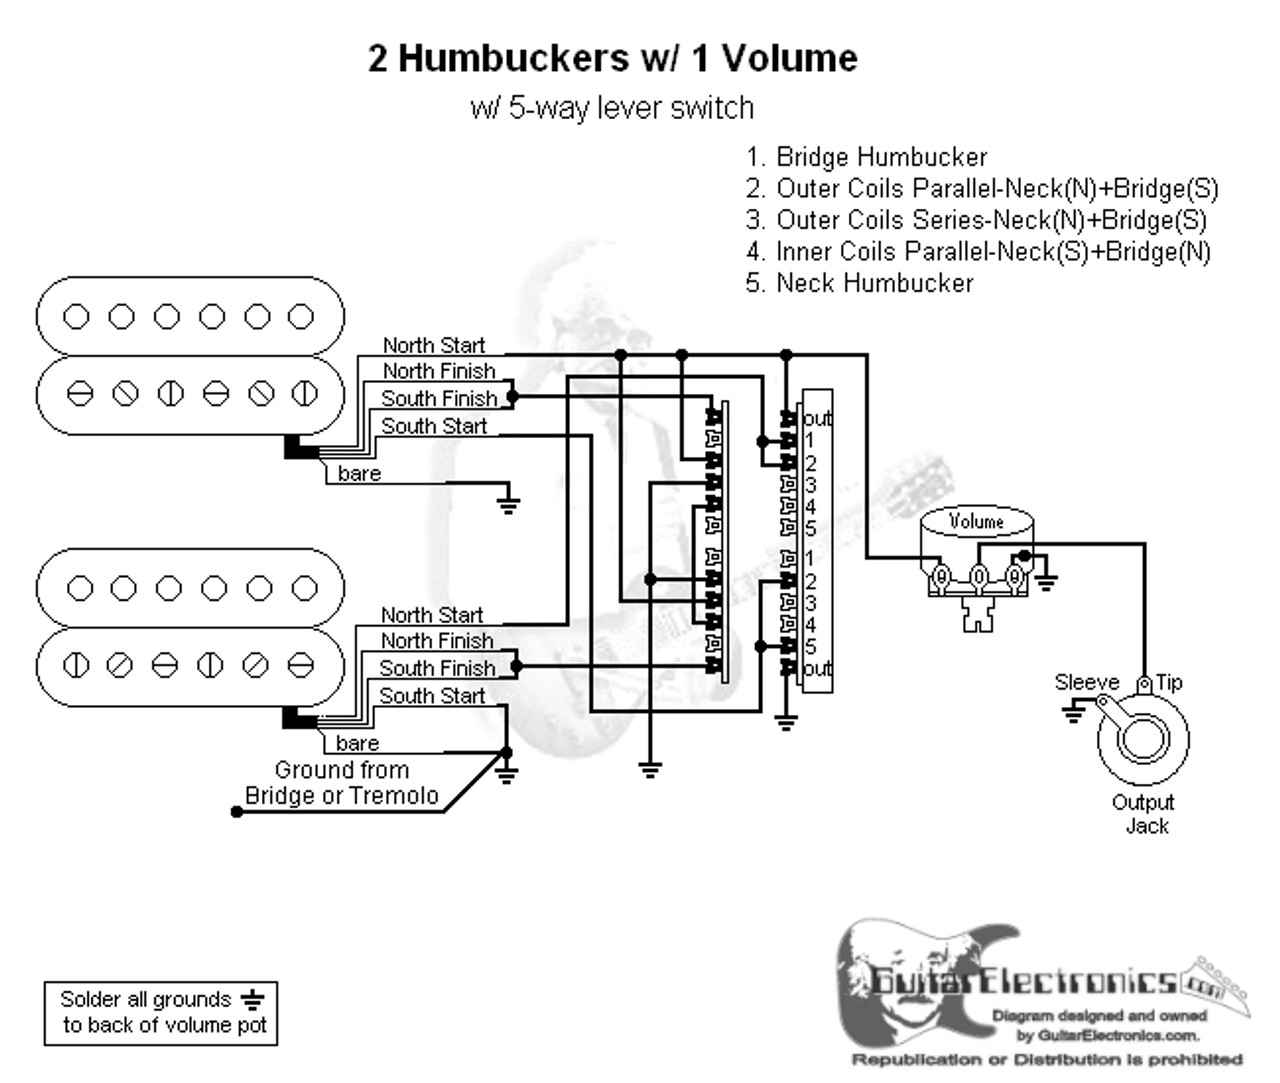 Wiring Diagram 5 Way Switch 2 Humbuckers - Wiring Diagram ... on